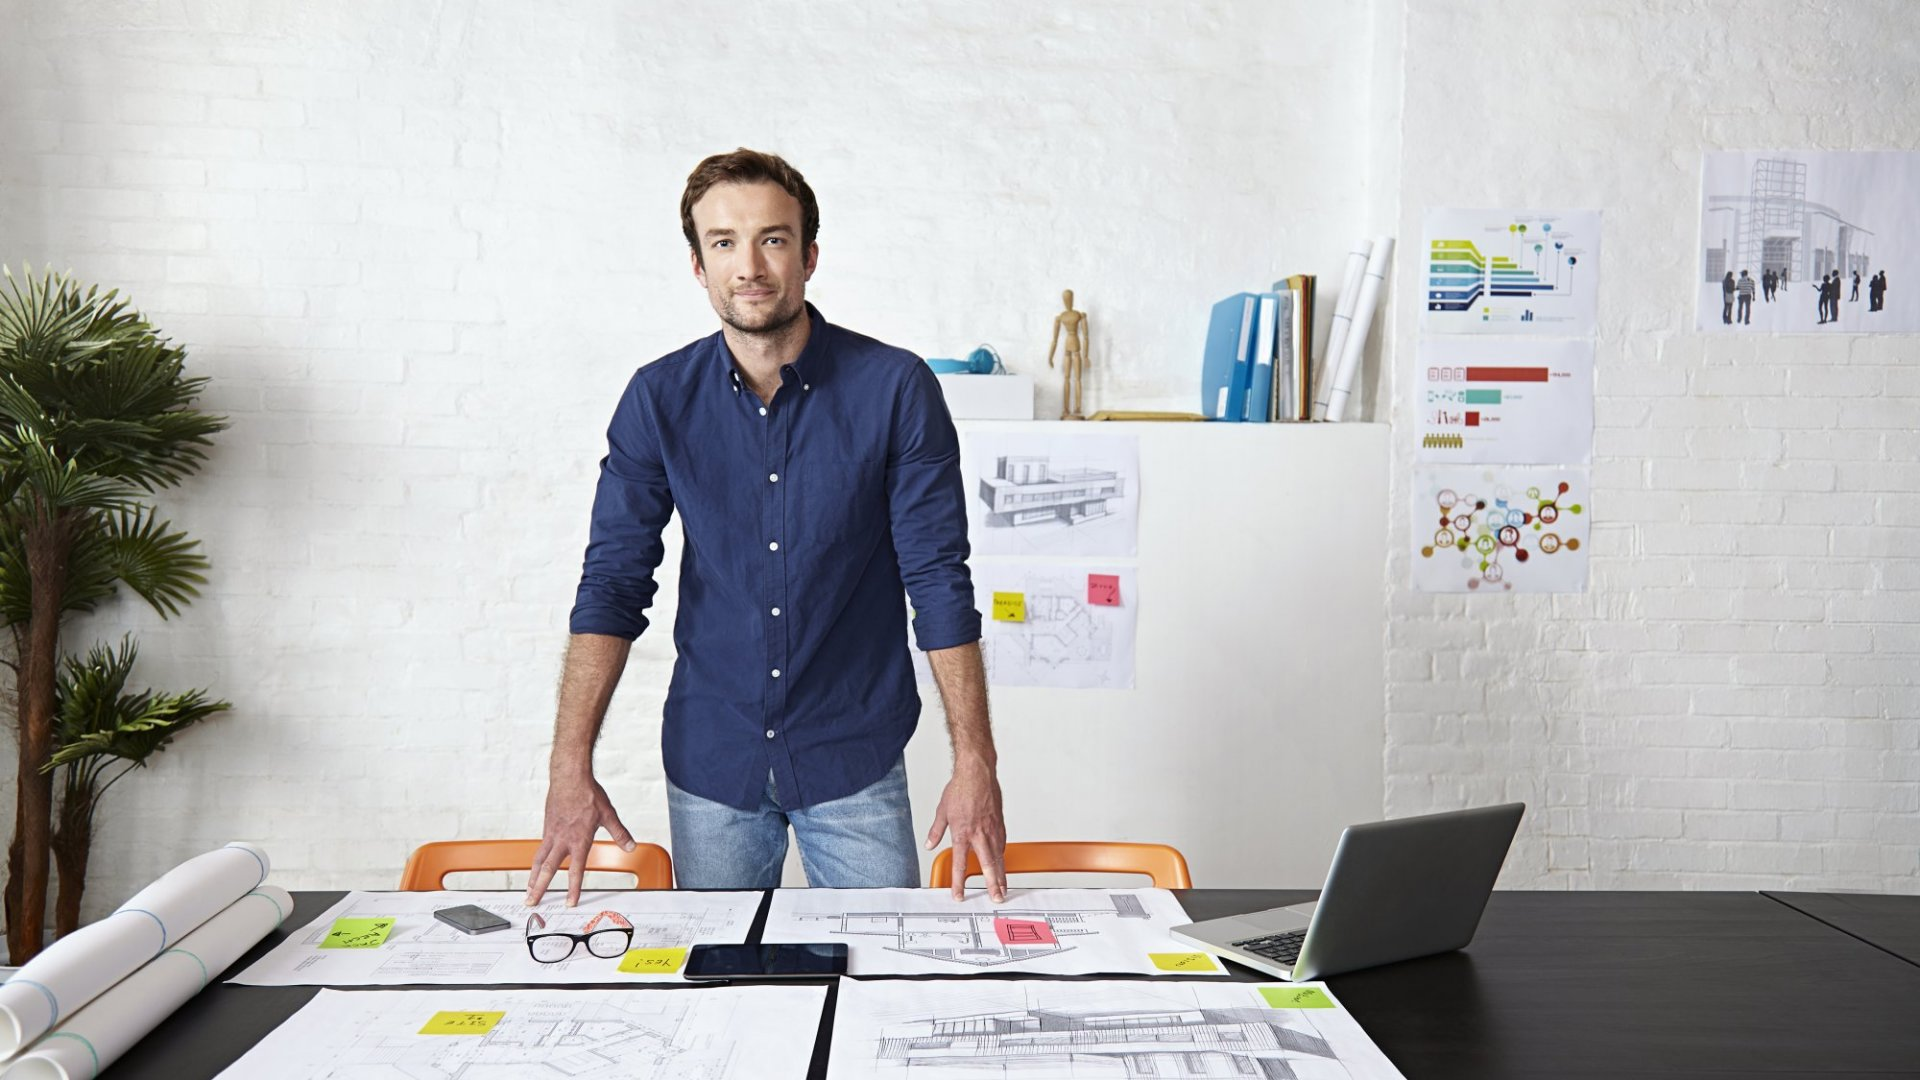 How to Avoid the  'Early Adopter Trap' That Can Sink an Innovative New Business